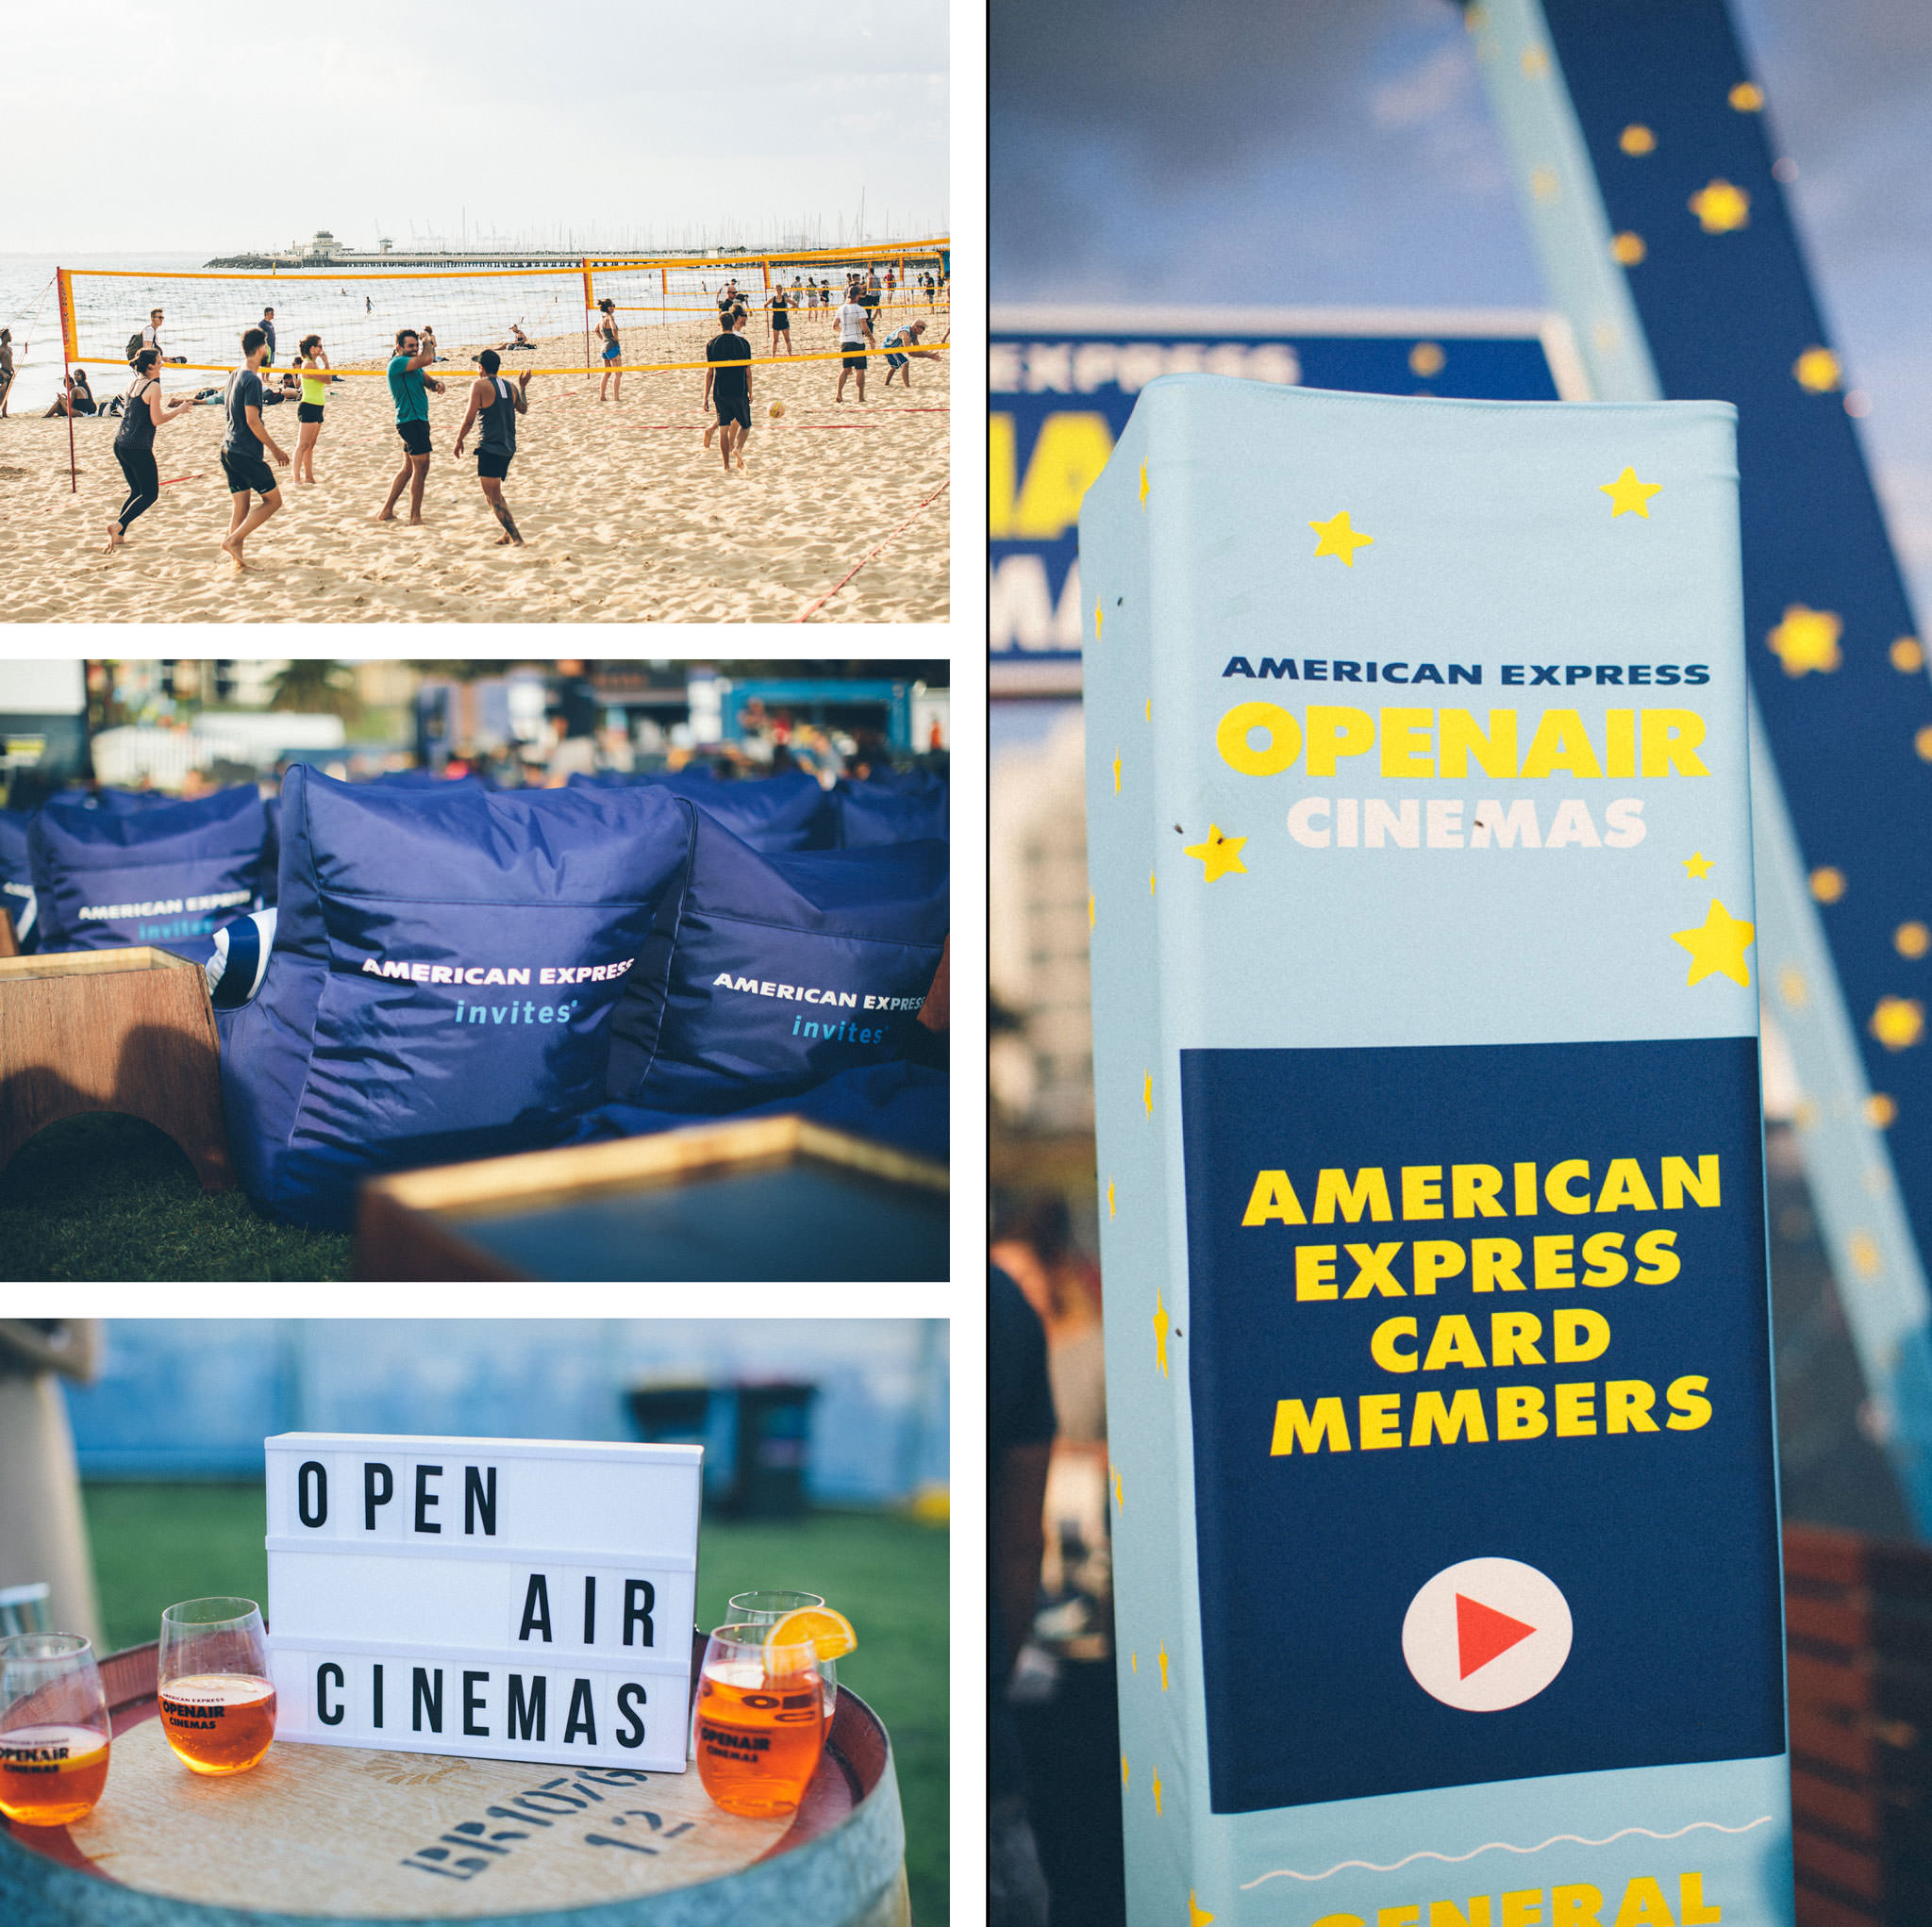 st kilda open air - beach and cinema